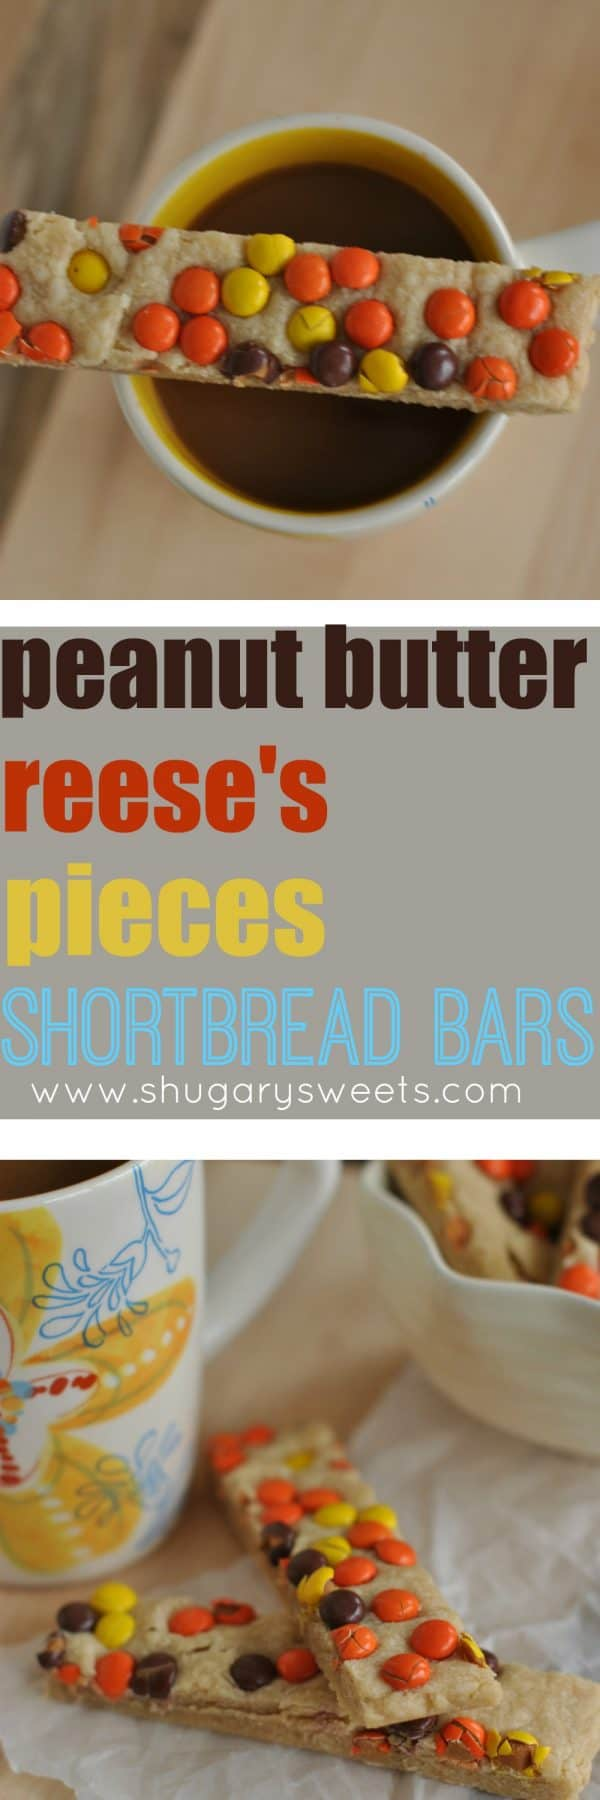 One day it's a lemon dessert I crave and the next day I am drooling over these peanut butter shortbread bars.